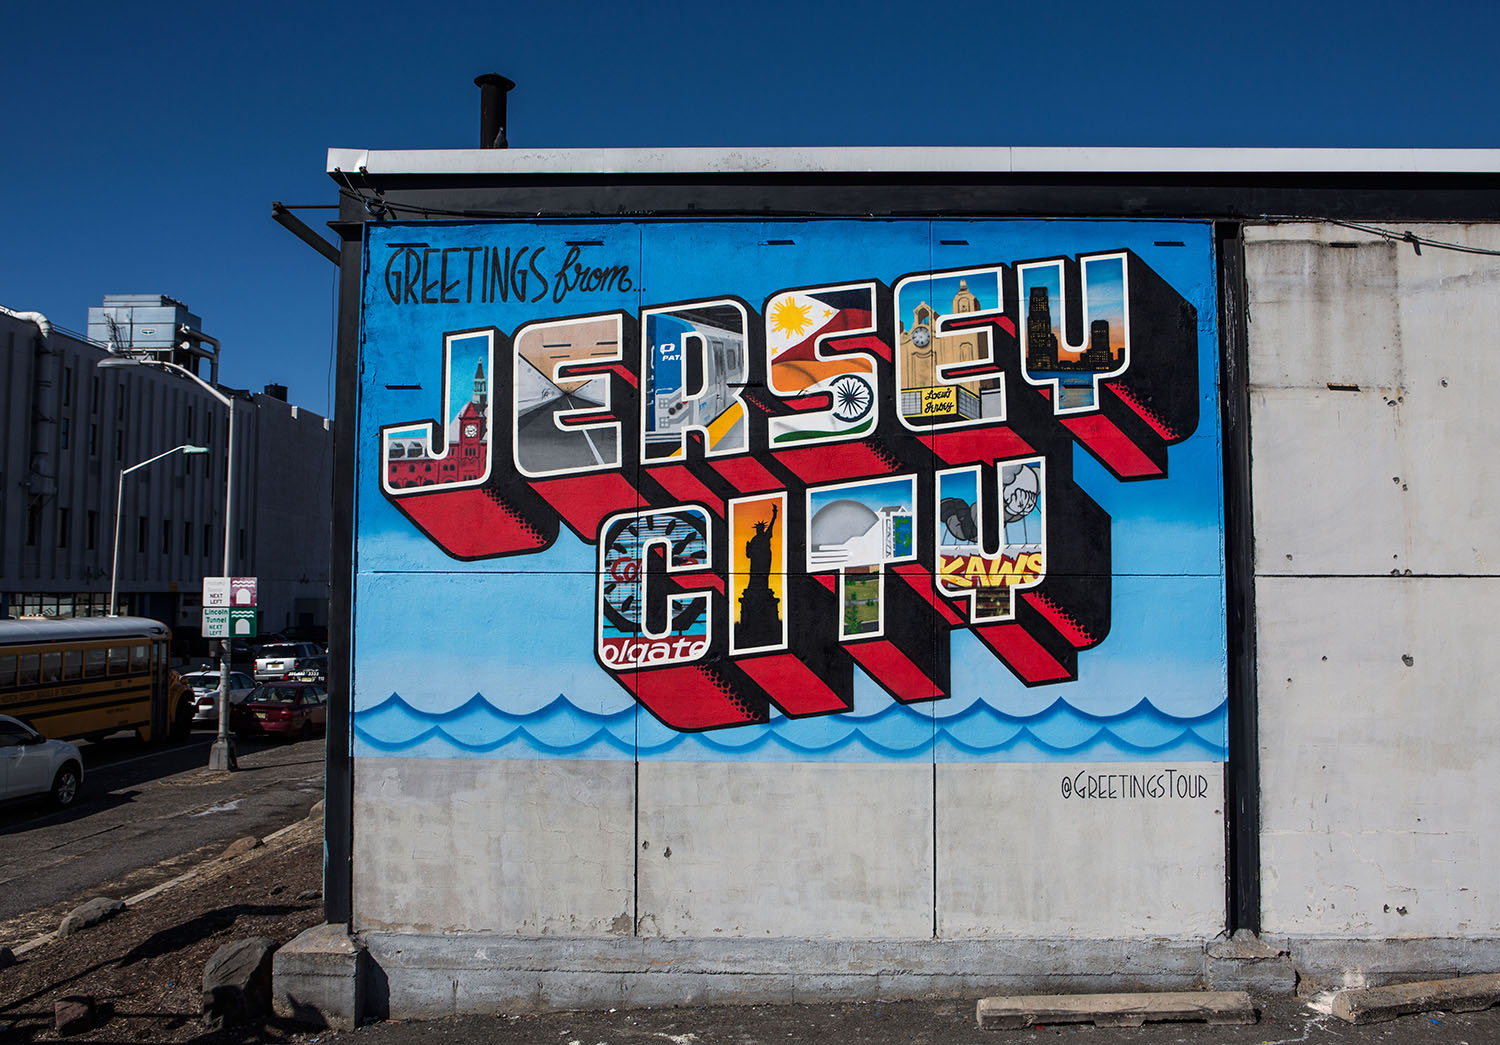 Jersey city nj greetings tour us postcard mural artists greetings from jersey city at a prime location just outside of the holland tunnel completed in march of 2015 we struggled to stay warm for this one m4hsunfo